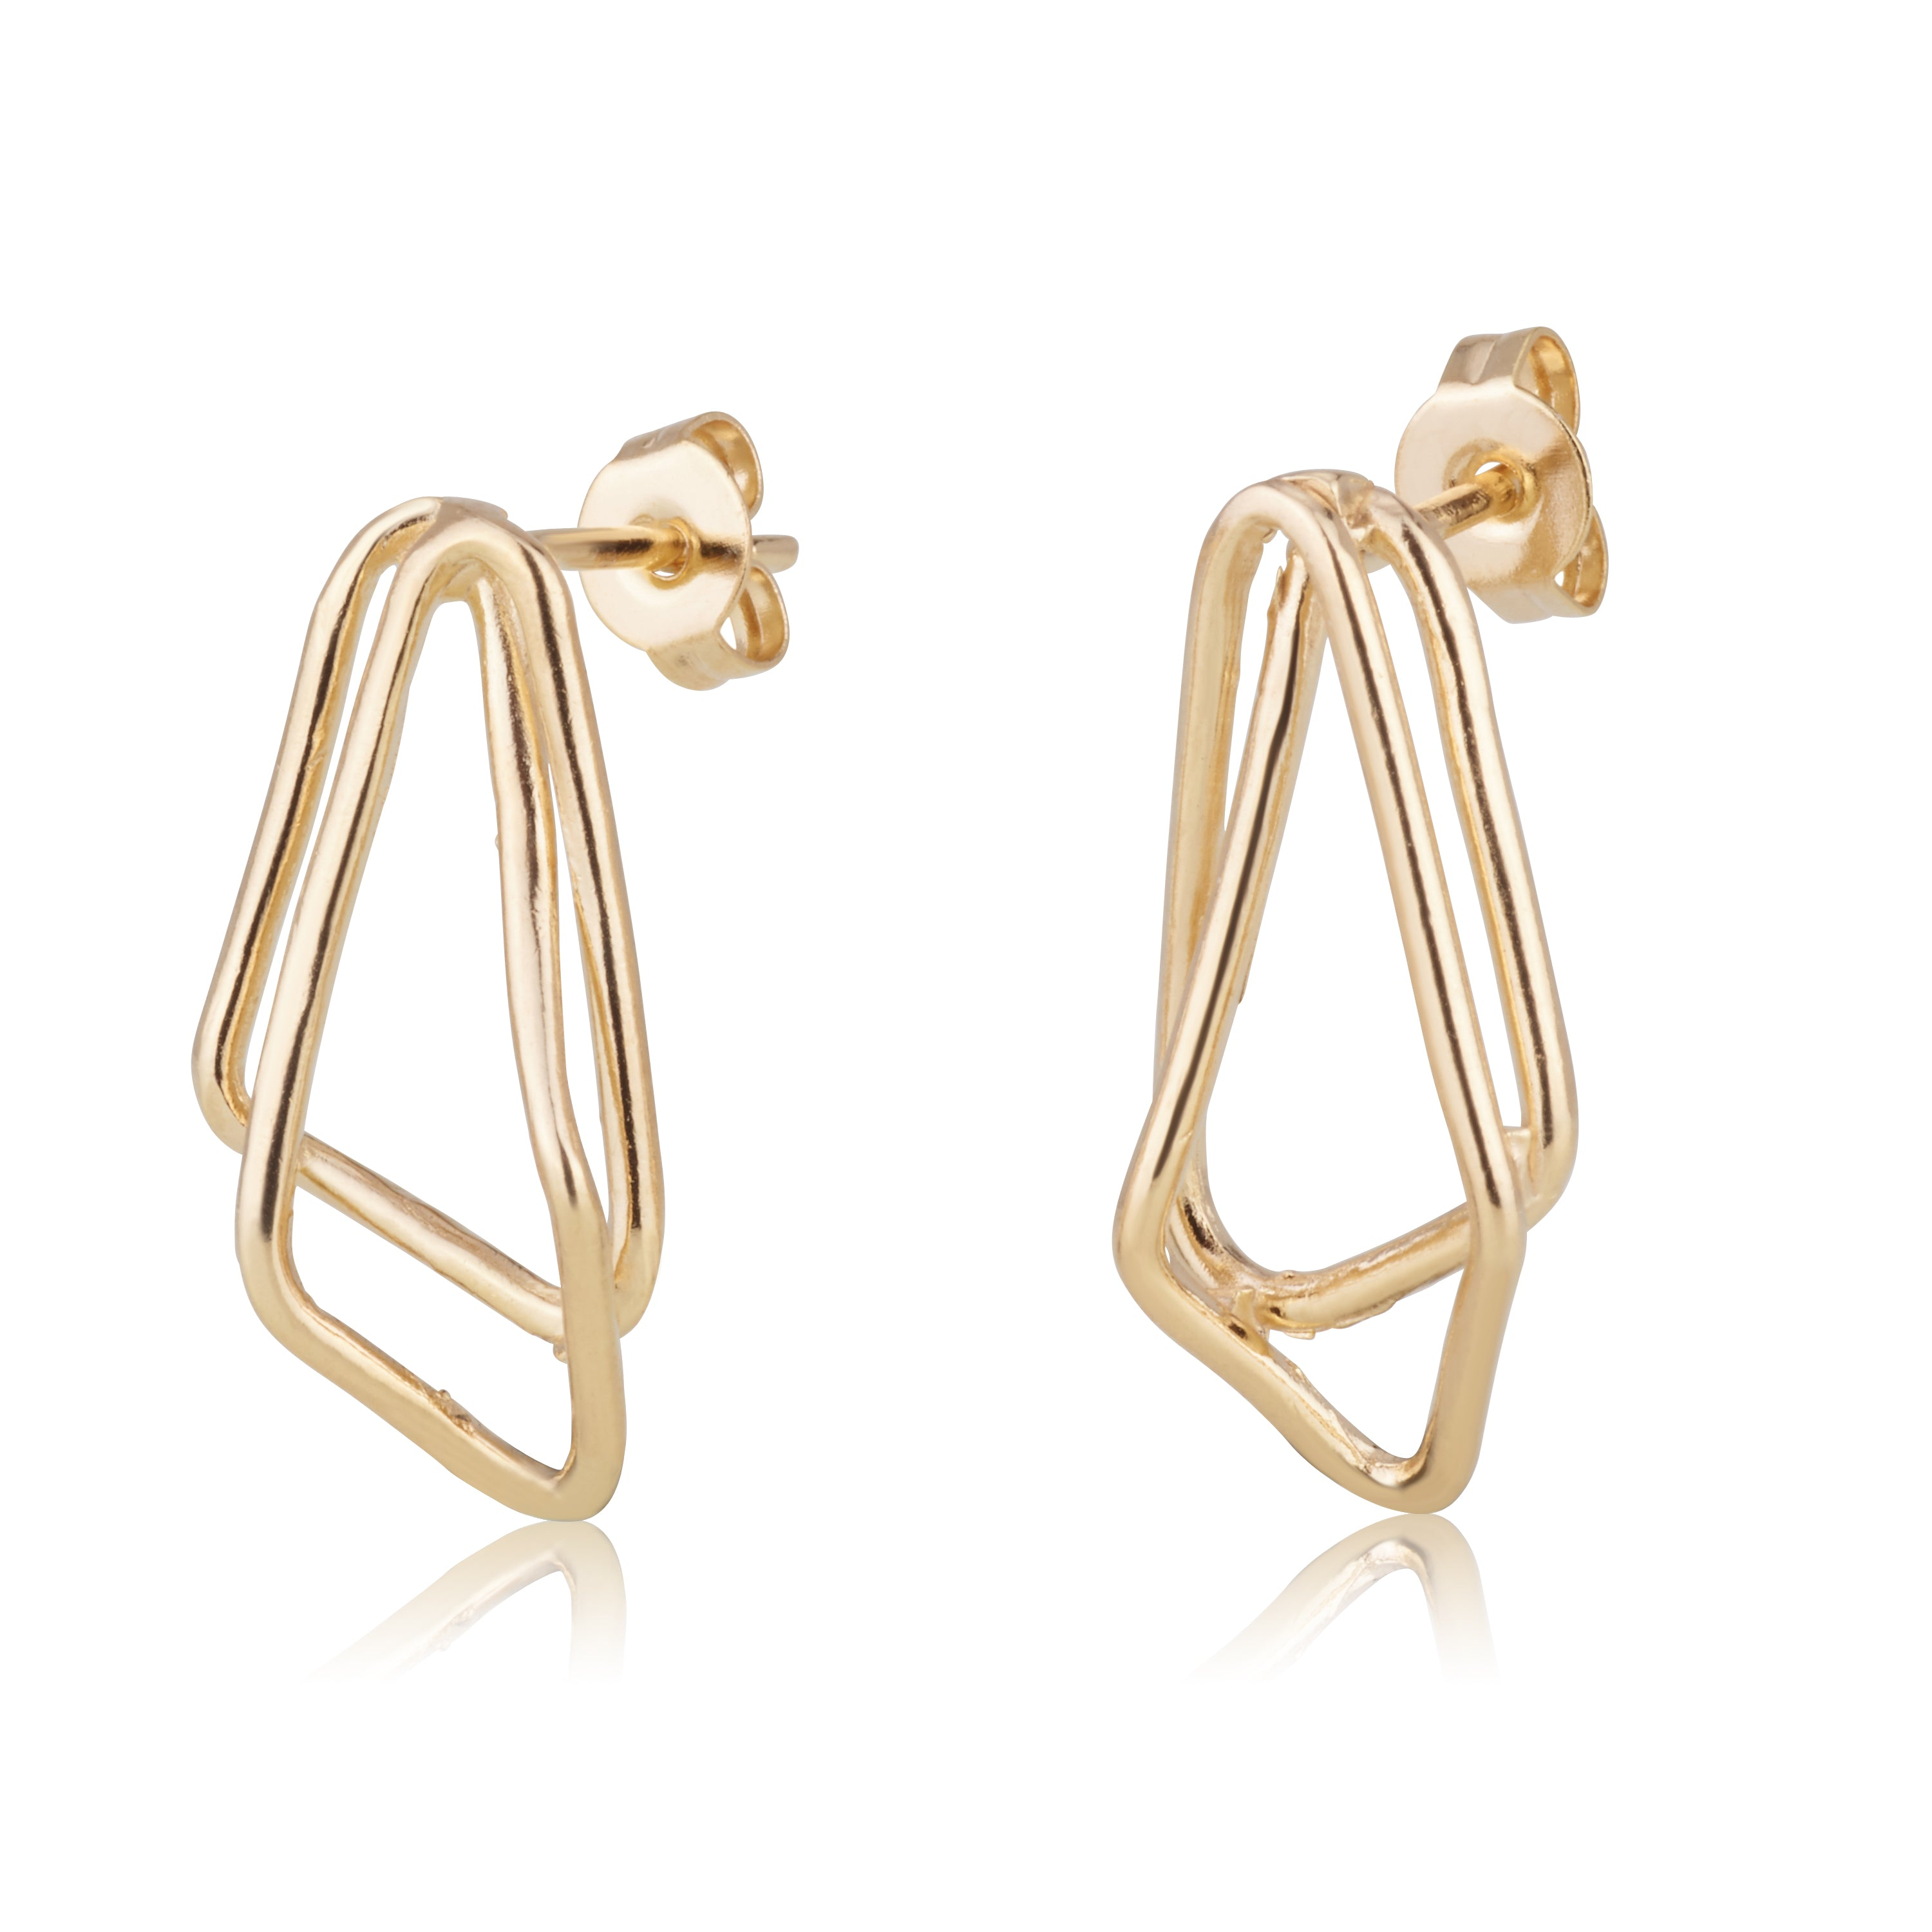 Rotem Stud Earrings